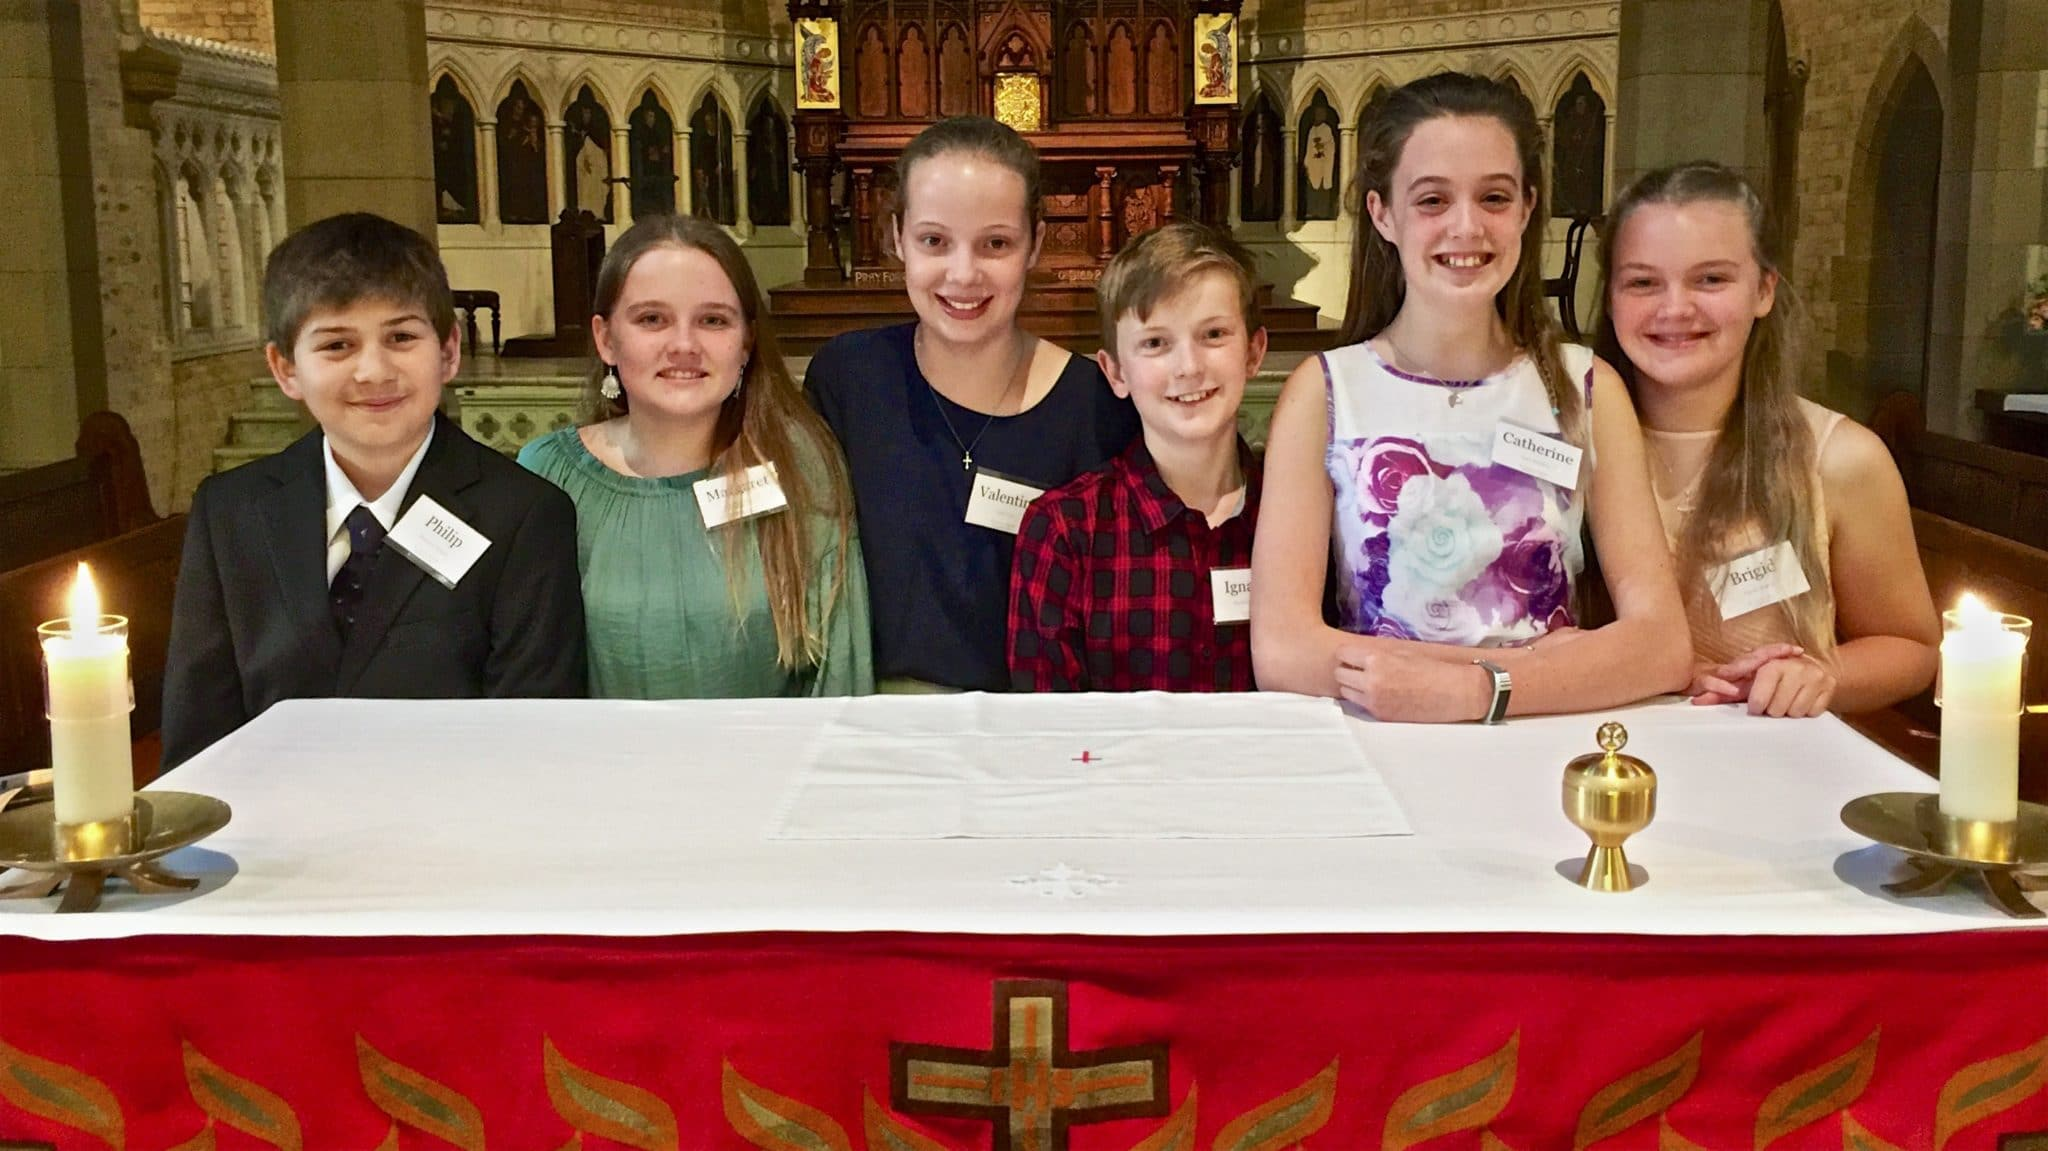 Six young people presented for the Sacrament of Confirmation this evening at St Canice's: Bronson (has the confirmation name of Philip), Meg (Margaret), Leila (Valentine), Matthew {Ignatius), Lucy (Catherine), and Niamh (Brigid). Thanks to Helen Campbell for preparing them so well.